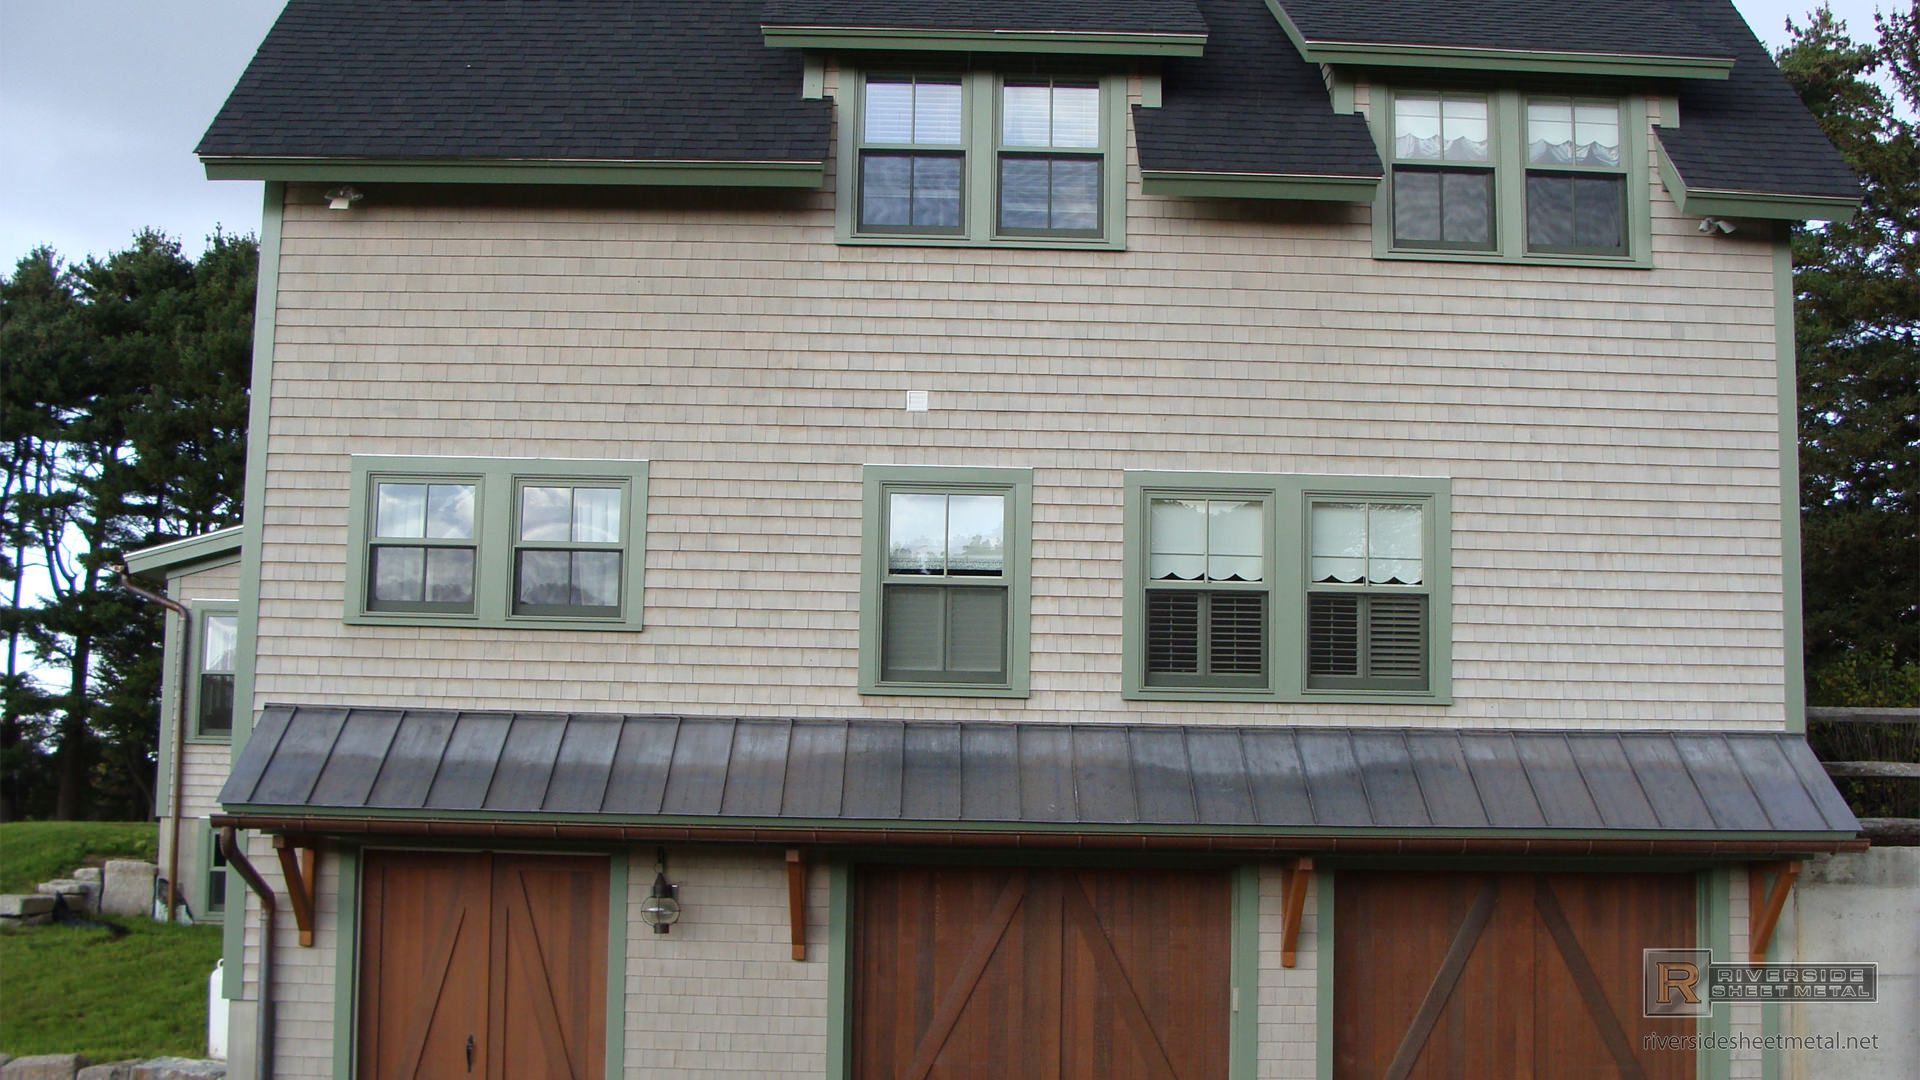 Lead Coated Copper Standing Seam Roof Panels Metal Roofing Metal Roof Standing Seam Metal Roof Standing Seam